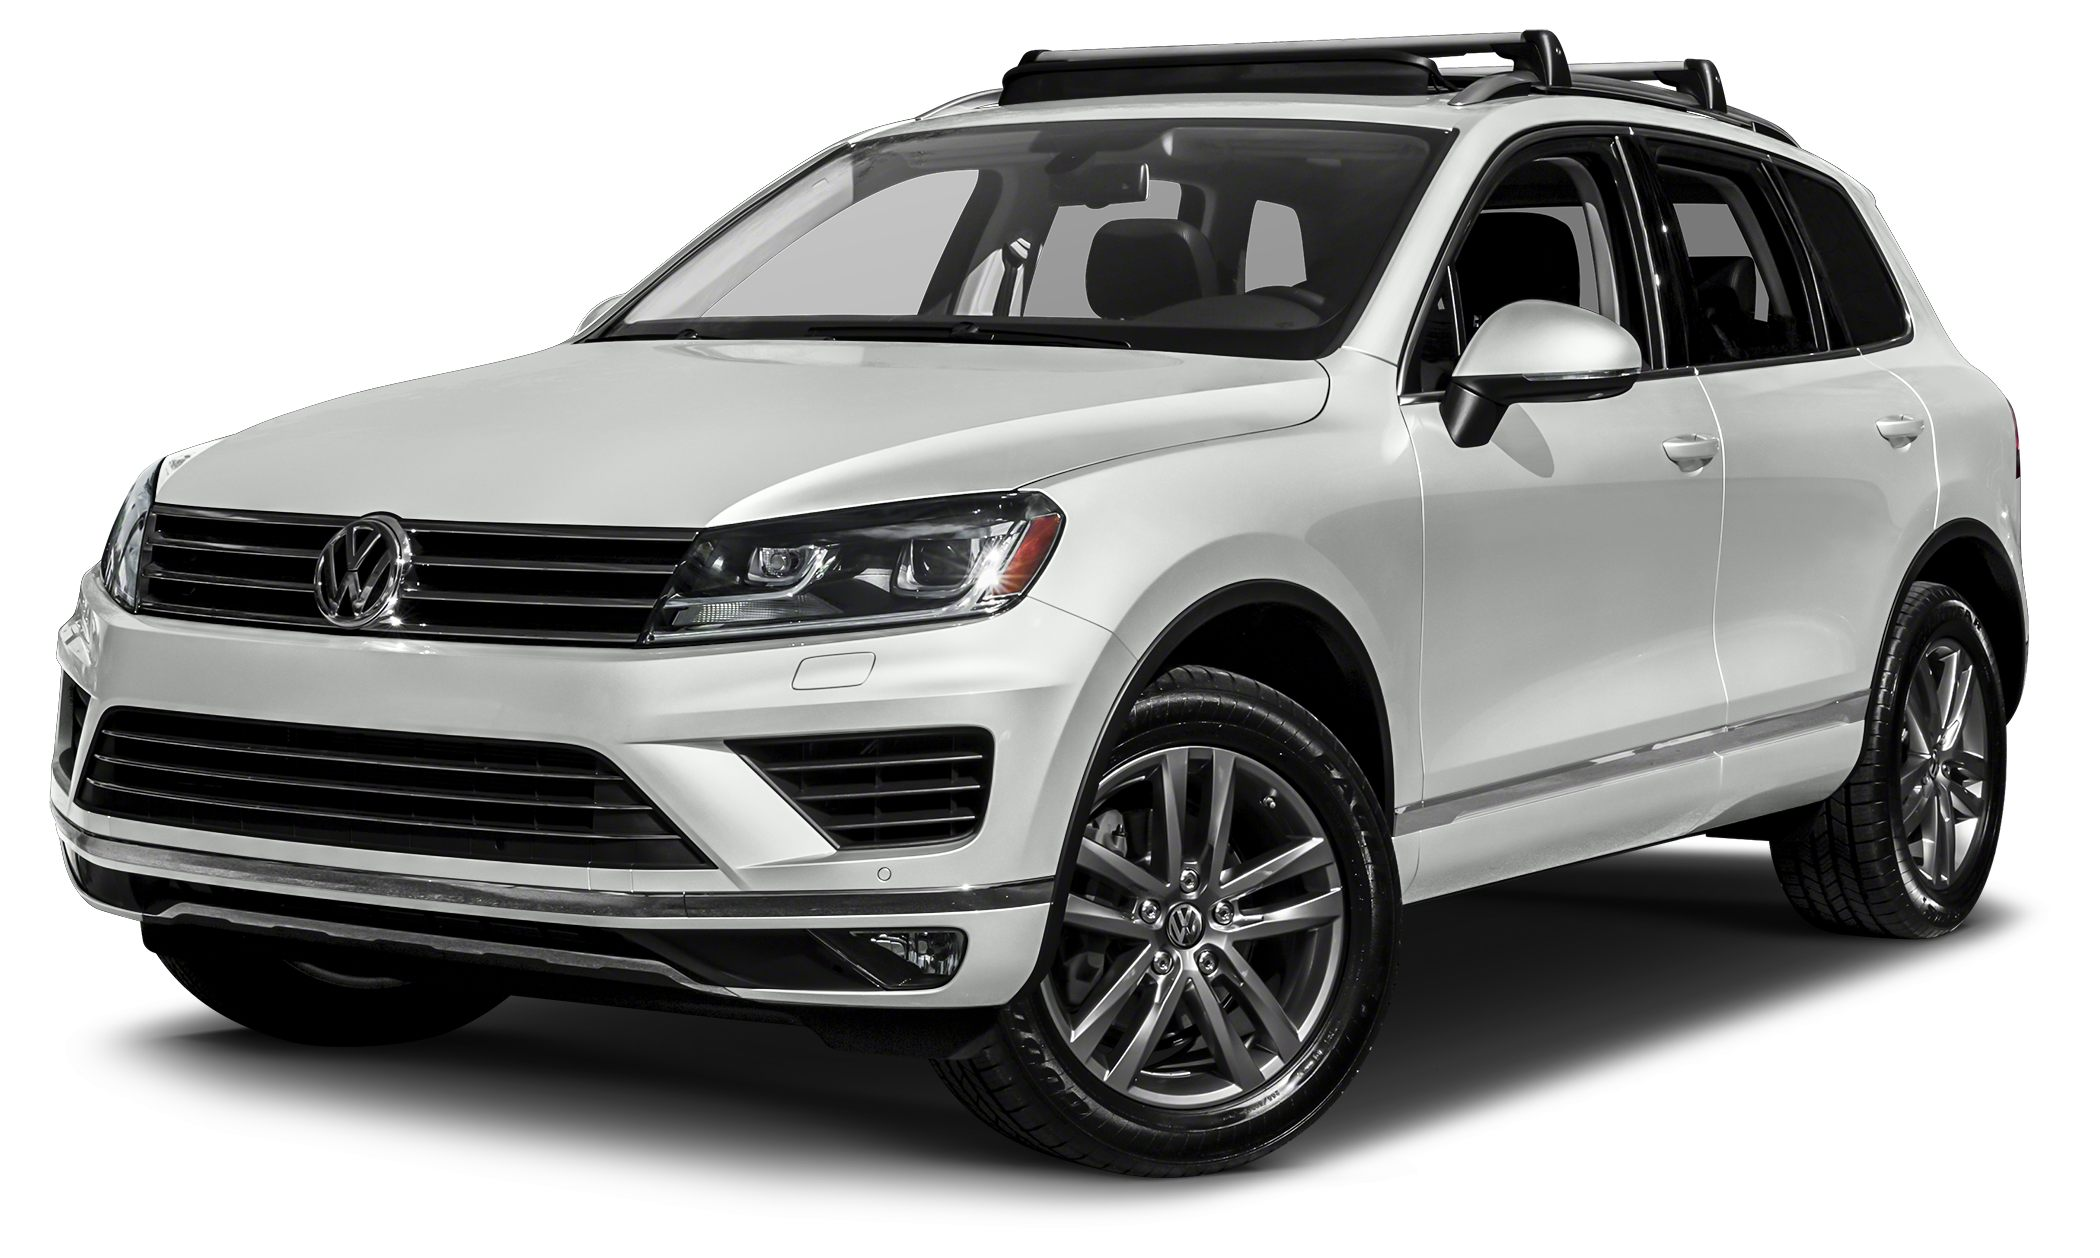 Lamborghini Monthly Payment >> 2018 Volkswagen Touareg Prices & Specifications in UAE, Dubai, Abu Dhabi, Sharjah - CarPrices.ae